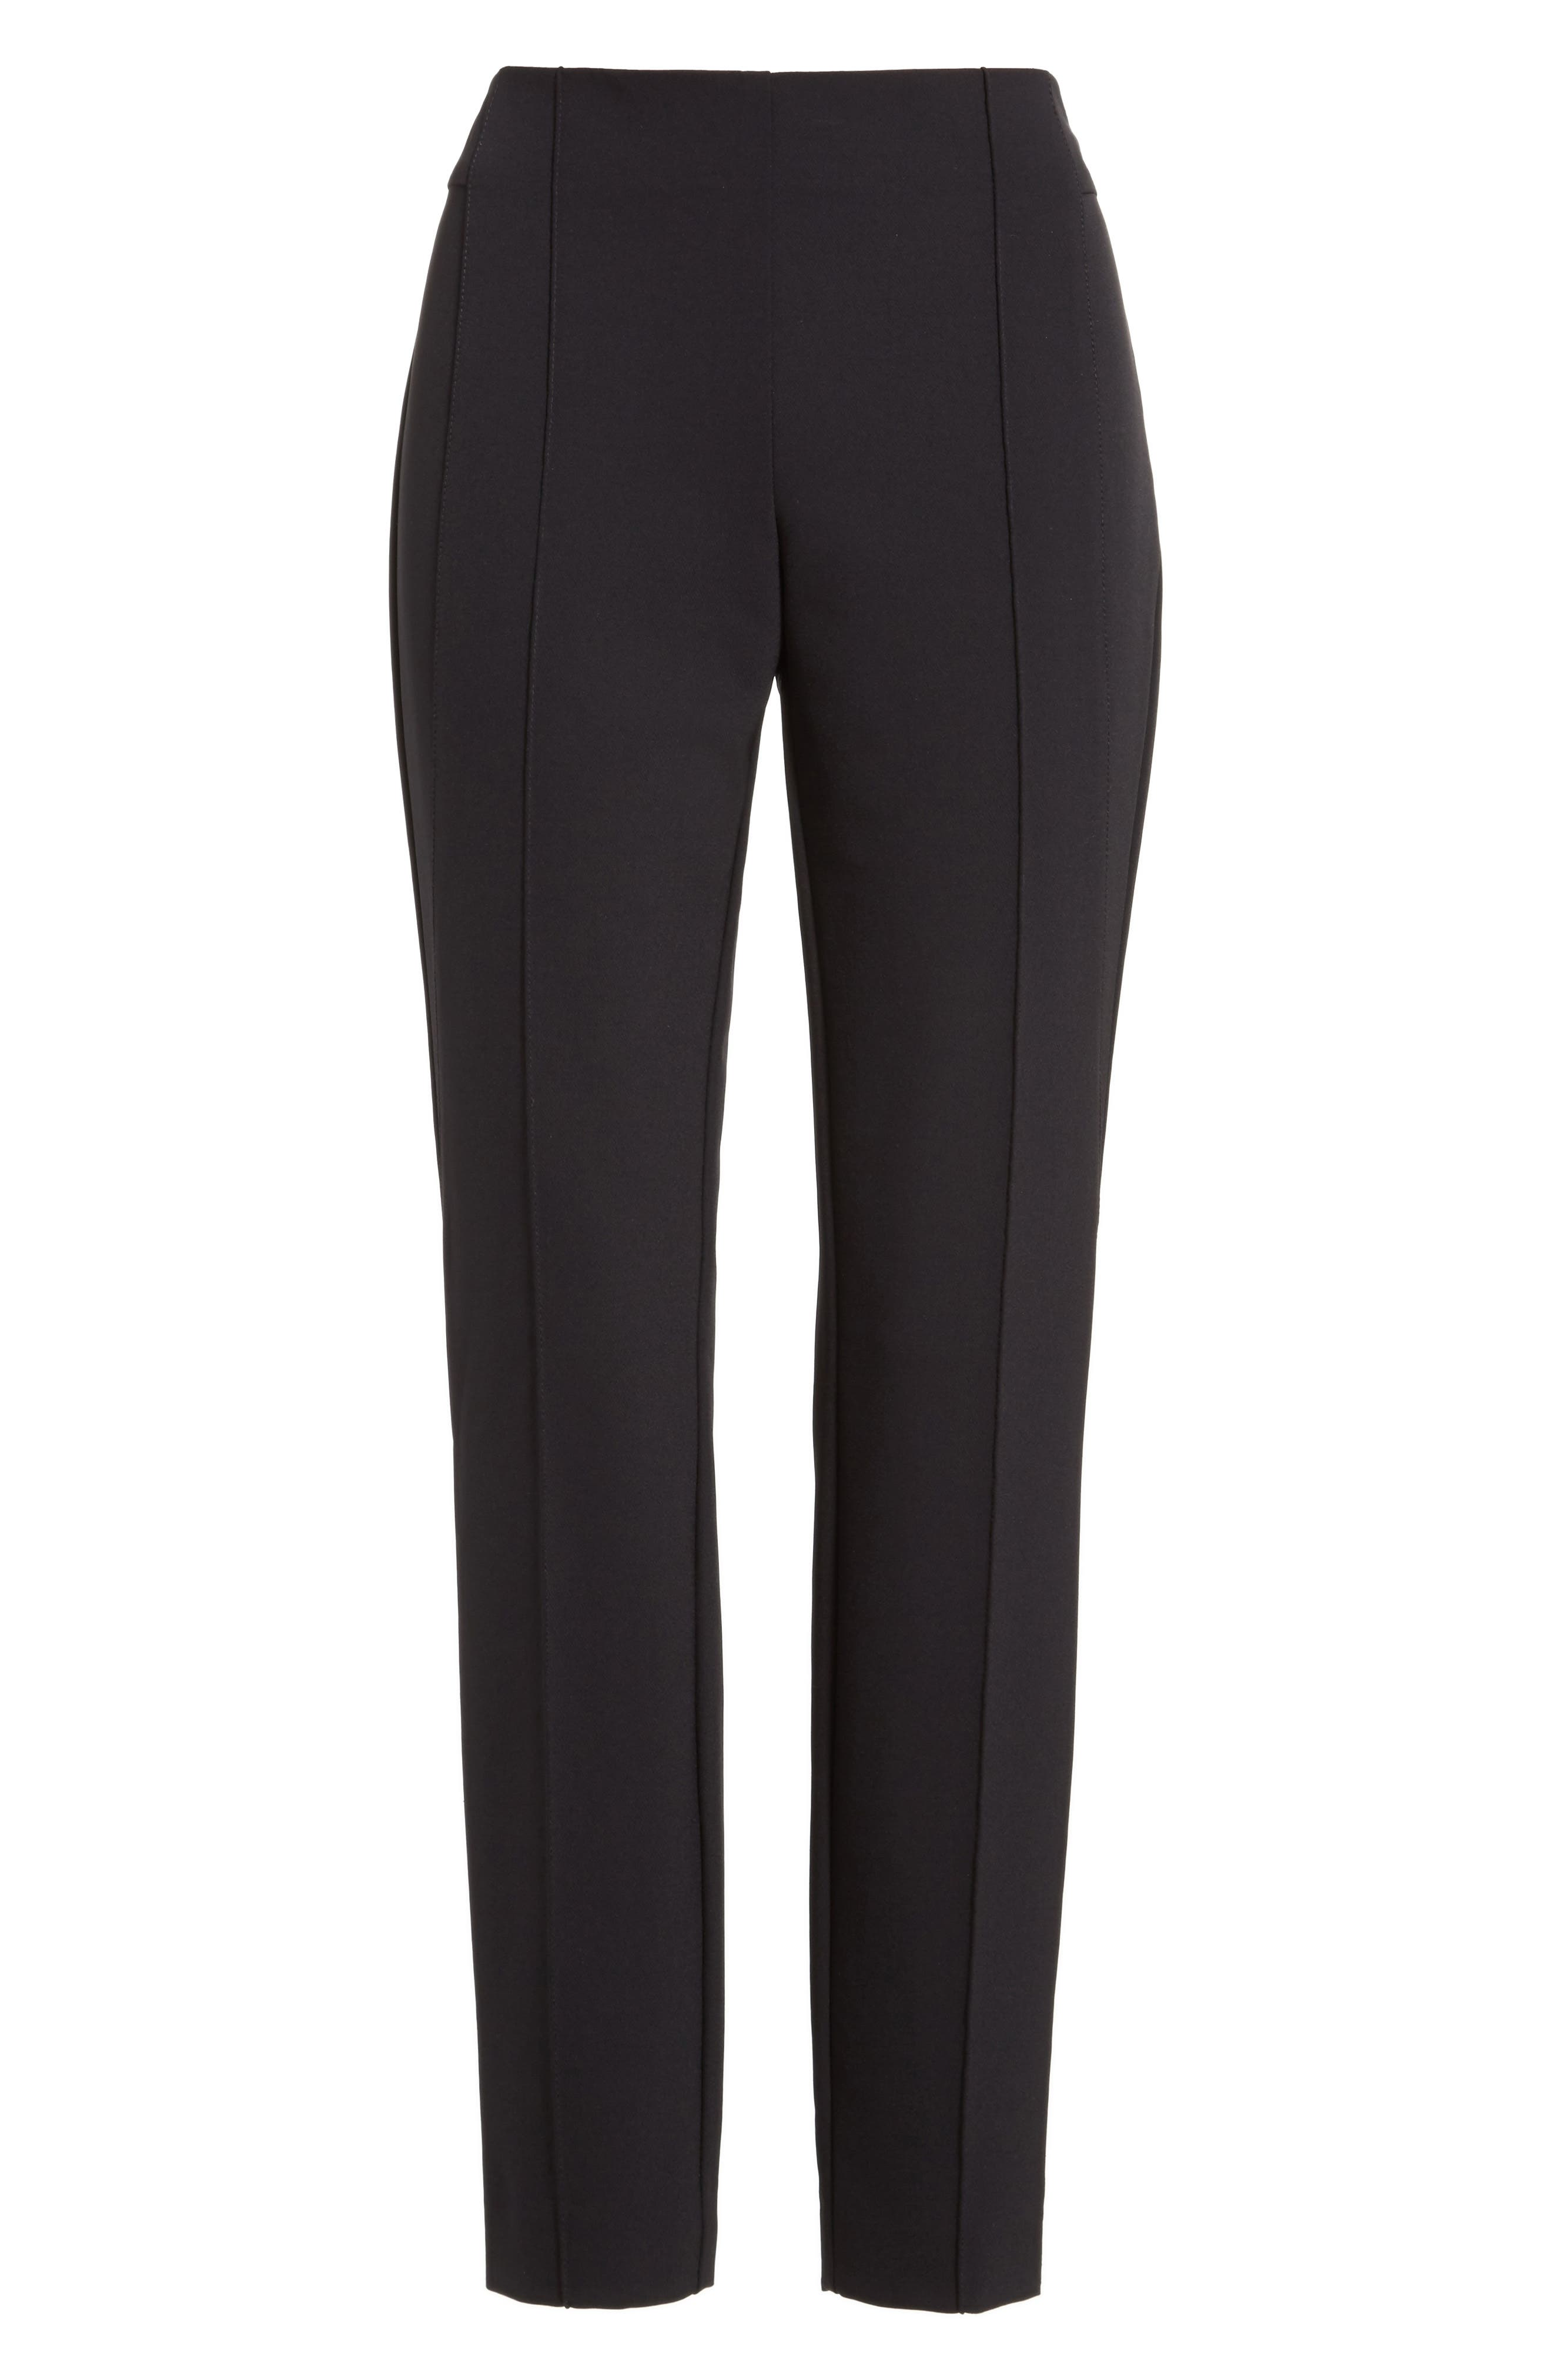 LAFAYETTE 148 NEW YORK, 'Gramercy' Acclaimed Stretch Pants, Alternate thumbnail 2, color, BLACK